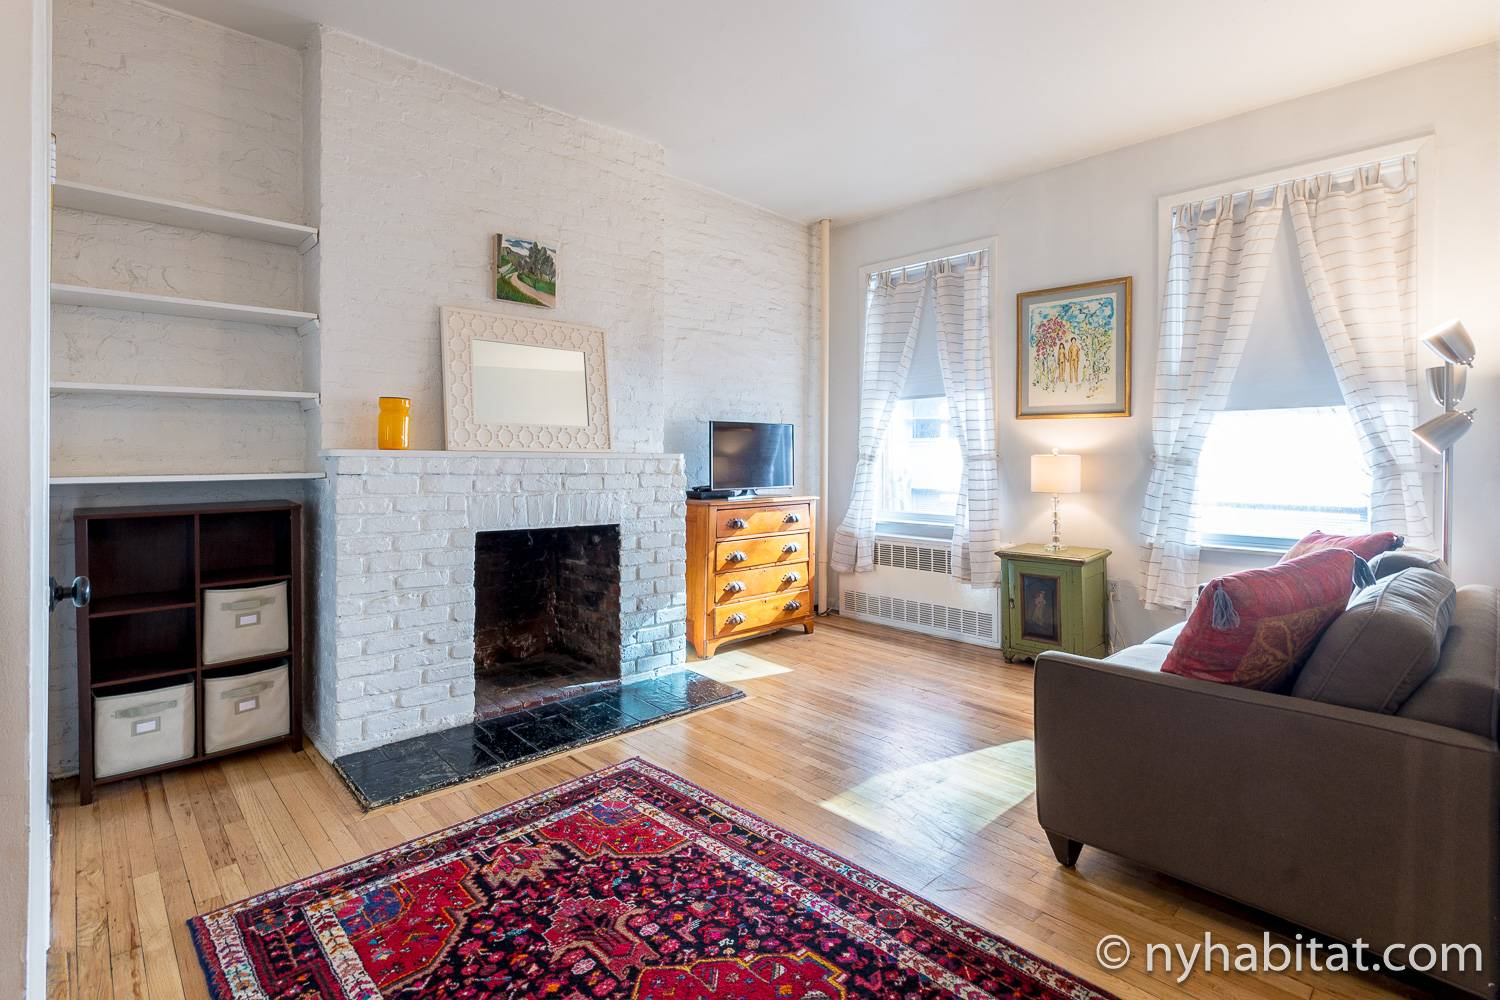 Image of living area in NY-14585 with sofa bed, television and decorative fireplace.